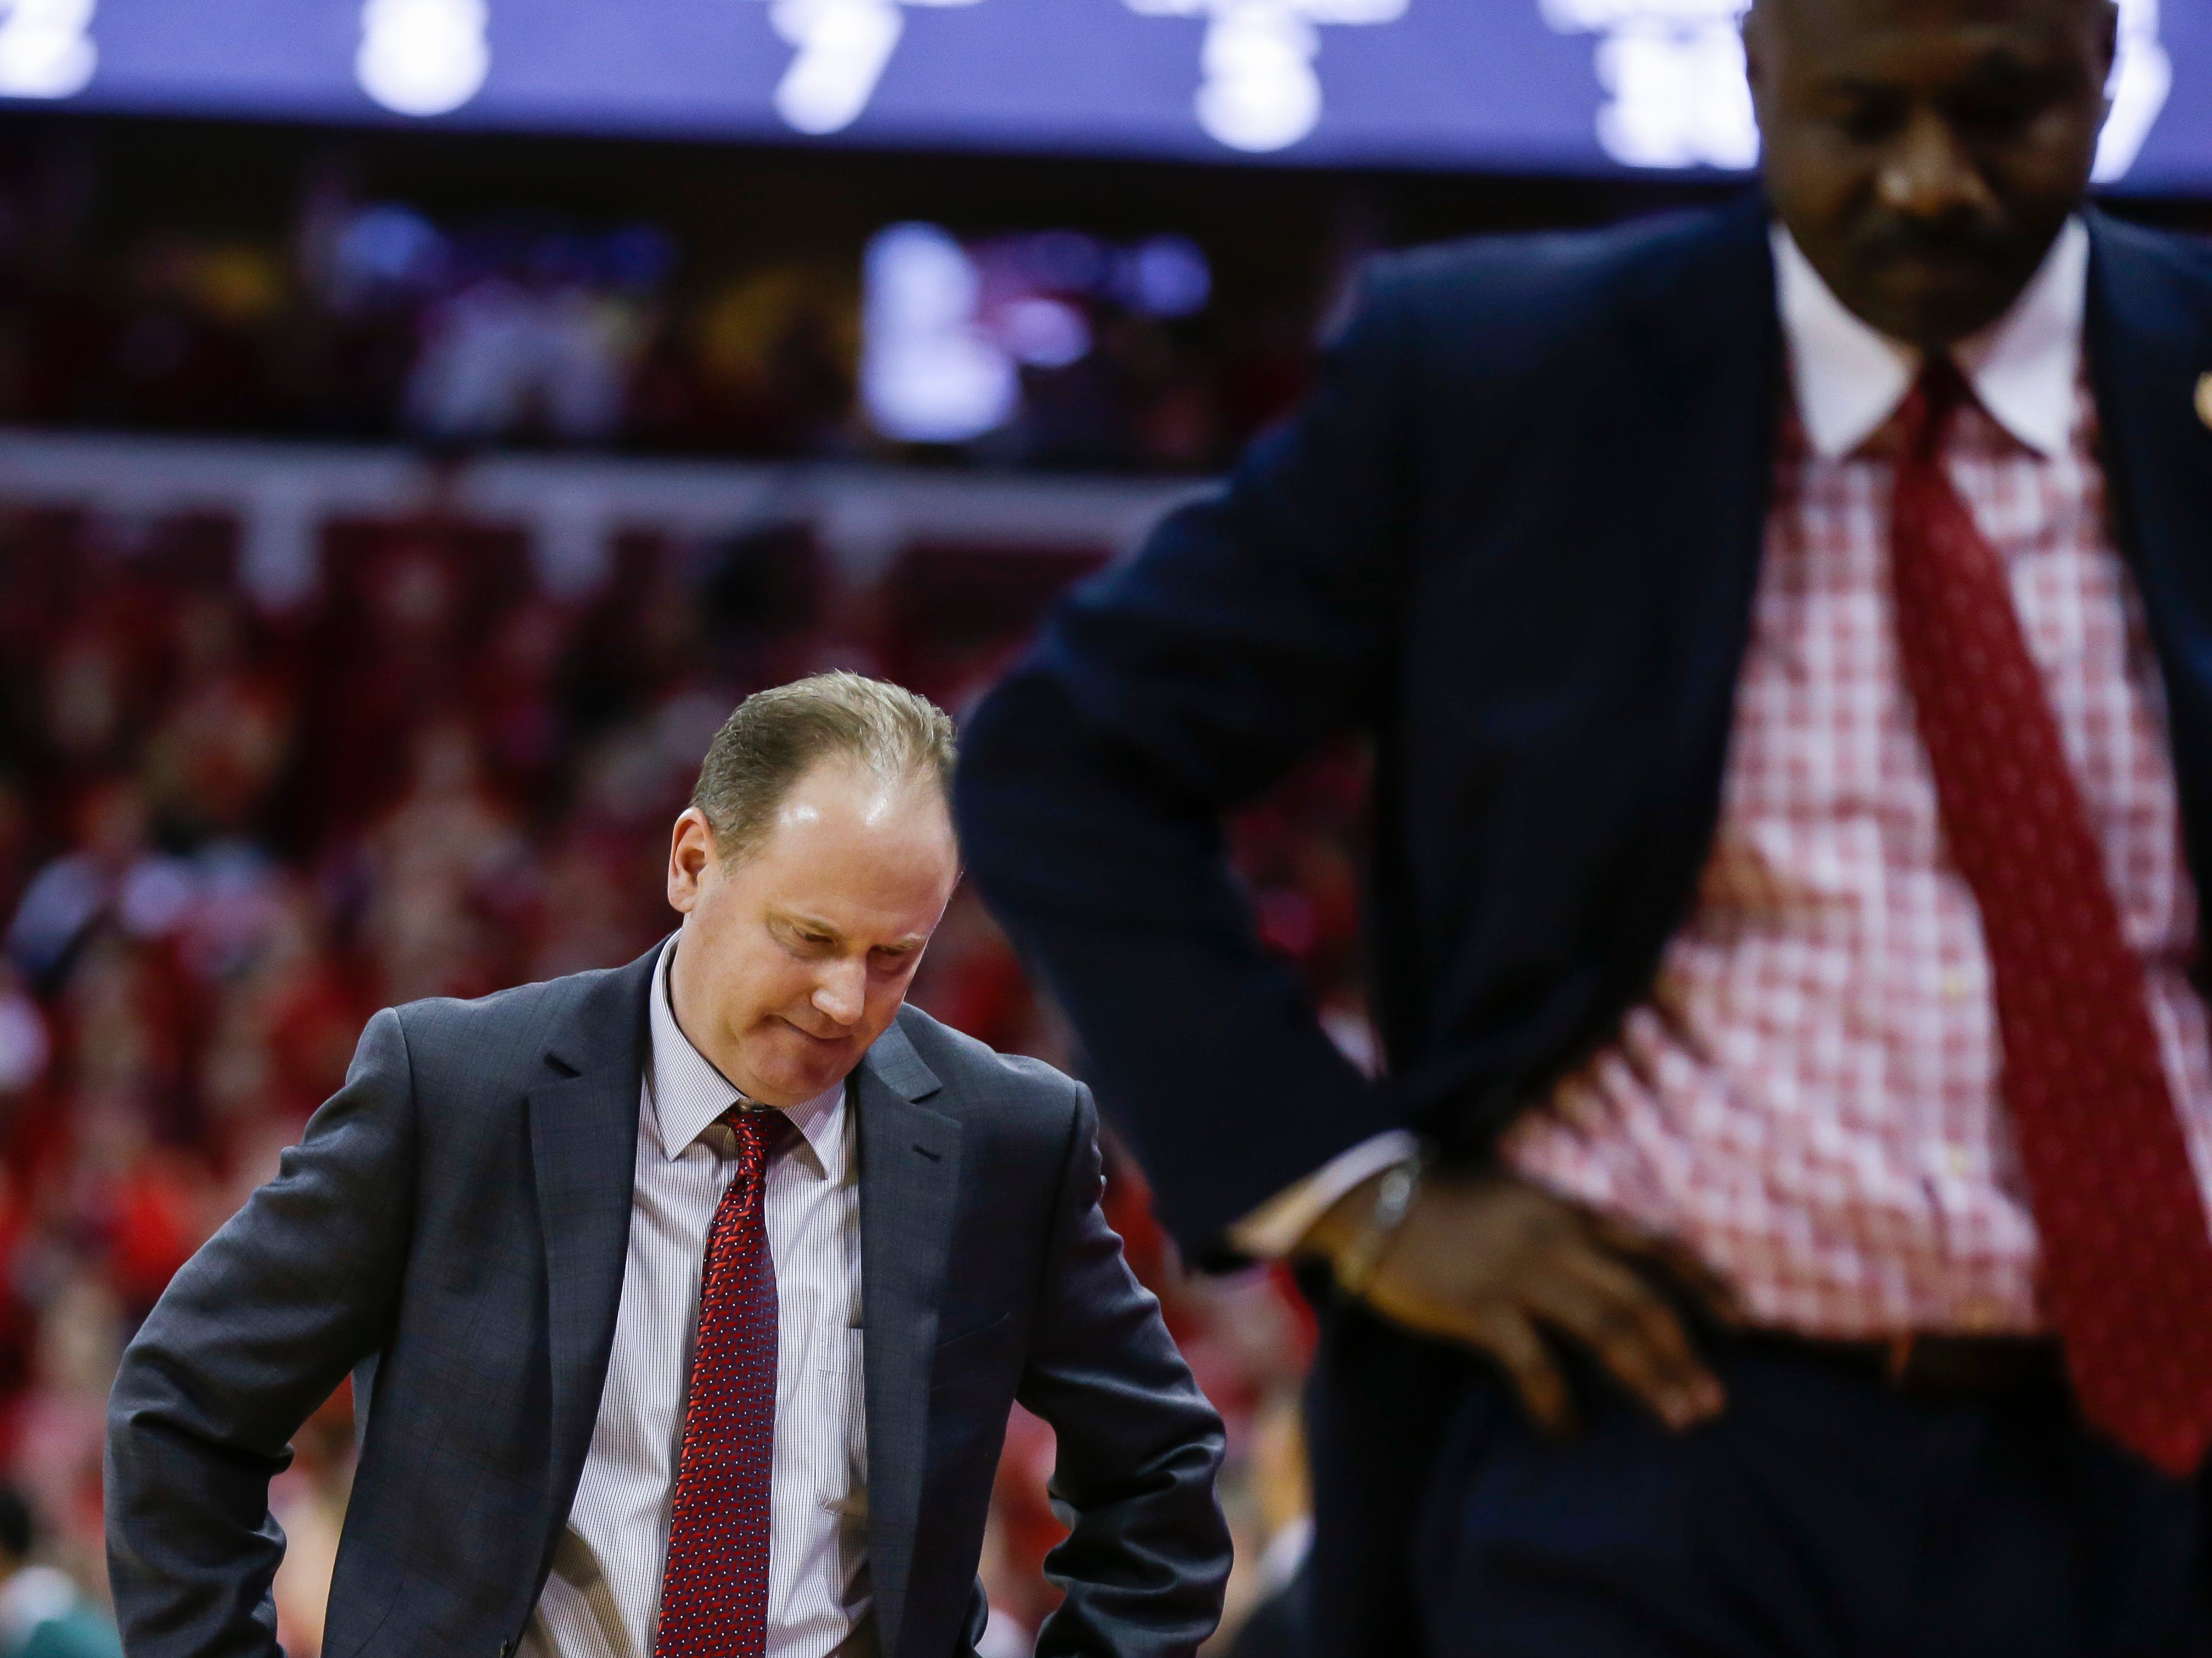 Wisconsin coach Greg Gard, left, and assistant coach Howard Moore pace the floor during the second half of Wisconsin's 67-59 loss to Michigan State in an NCAA college basketball game Tuesday, Feb. 12, 2019, in Madison, Wis.